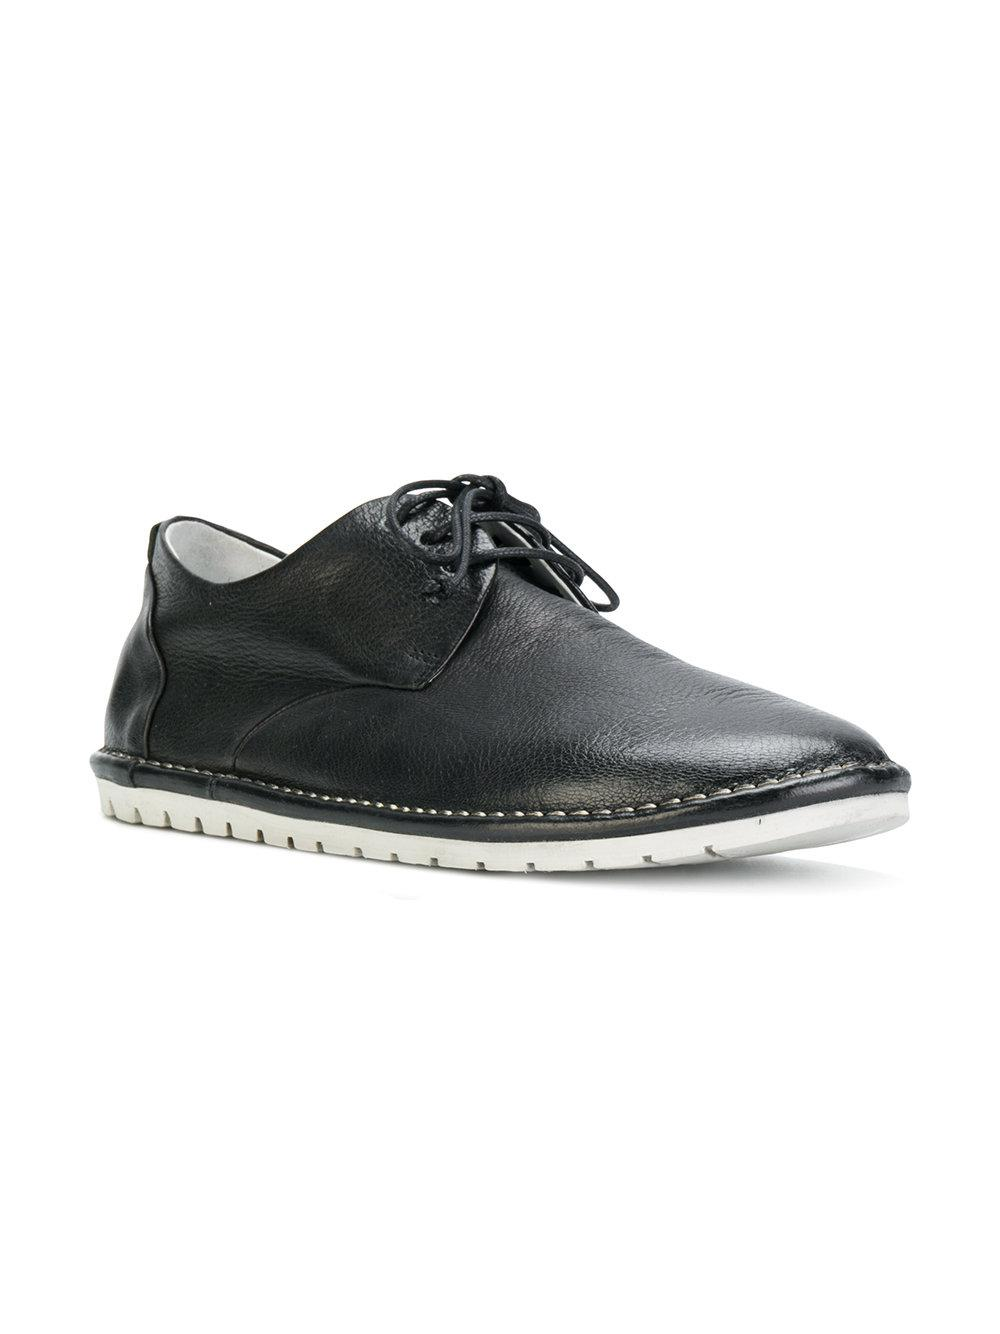 sports shoes c293e b7a5a marsell-Black-Sancrispa-Derby-Shoes.jpeg